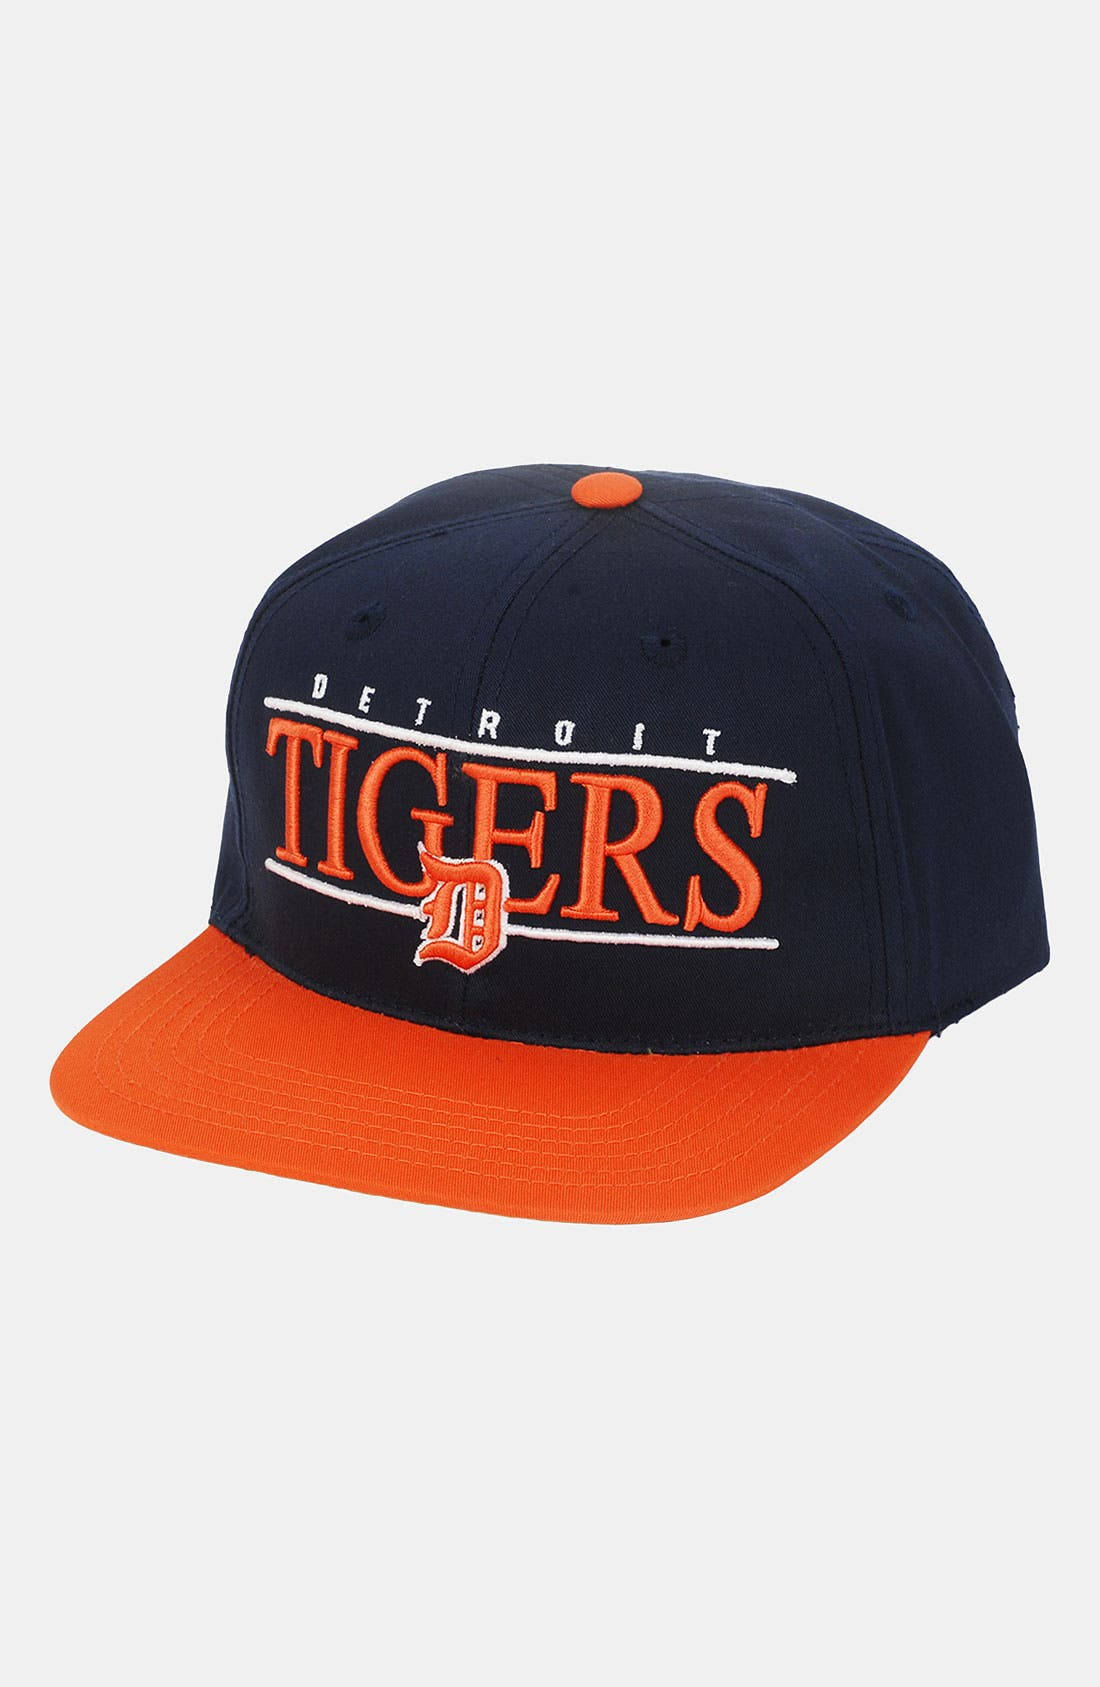 Main Image - American Needle 'Detroit Tigers - Nineties' Twill Snapback Baseball Cap